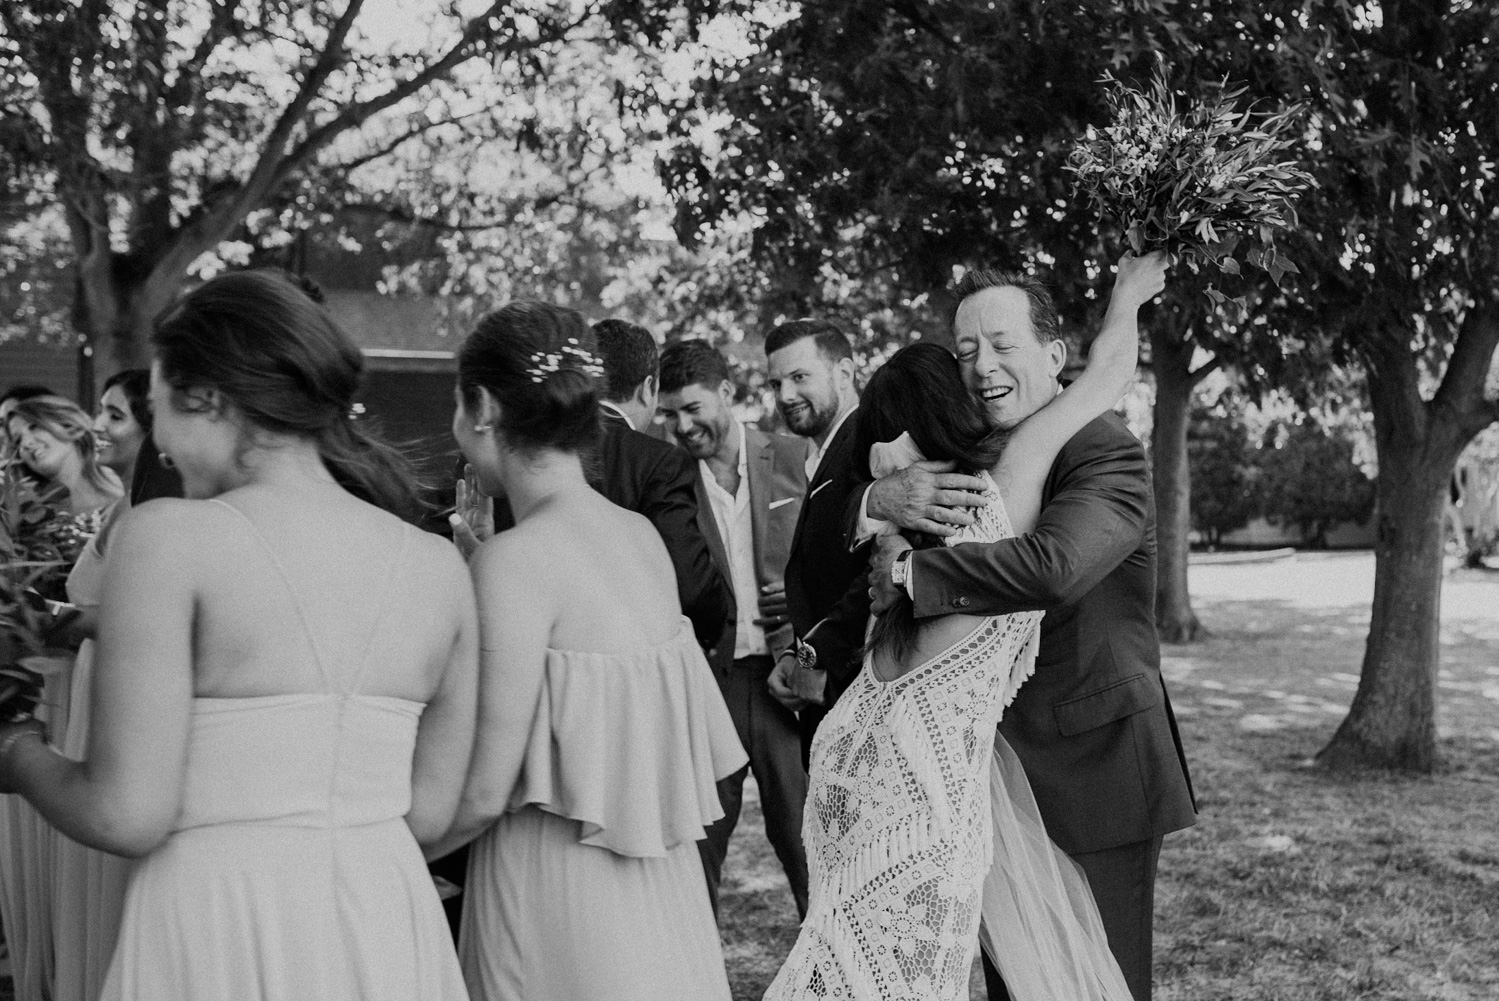 bride embraces her new father-in-law at the end of the wedding ceremony